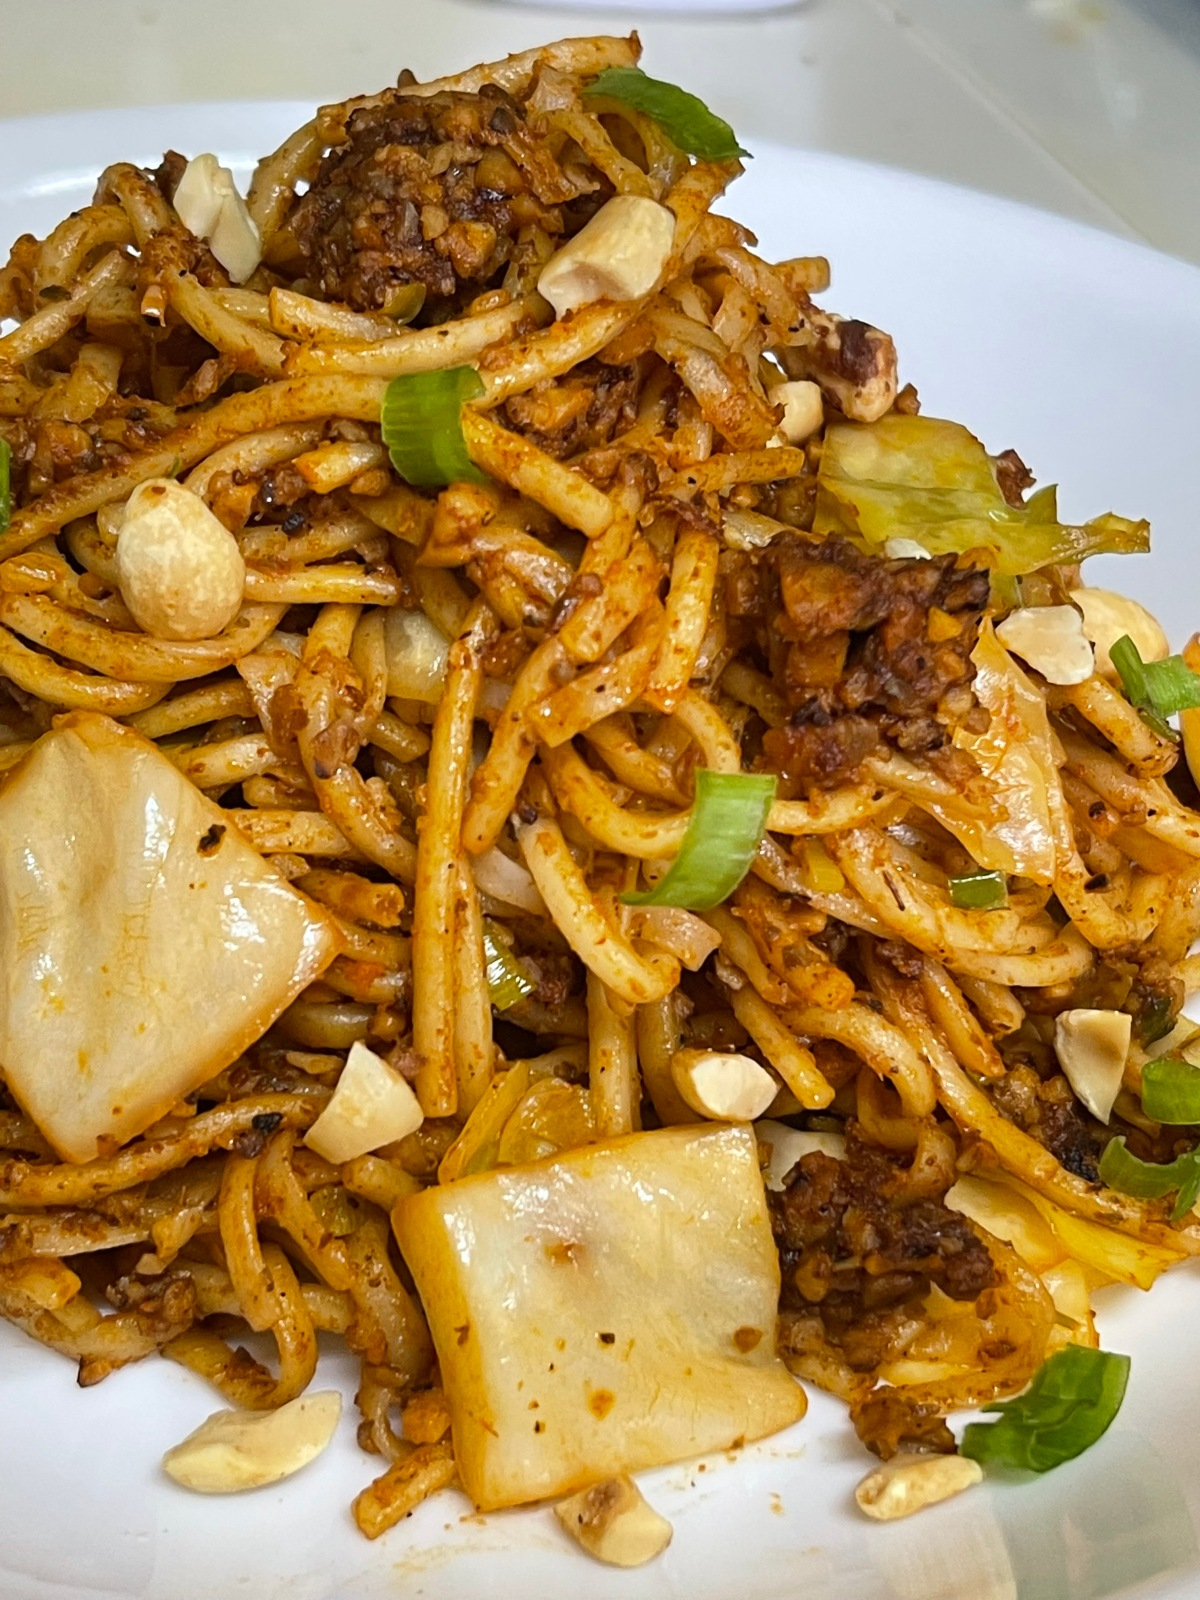 Spicy Udon Stir-Fry With Ground &Cabbage